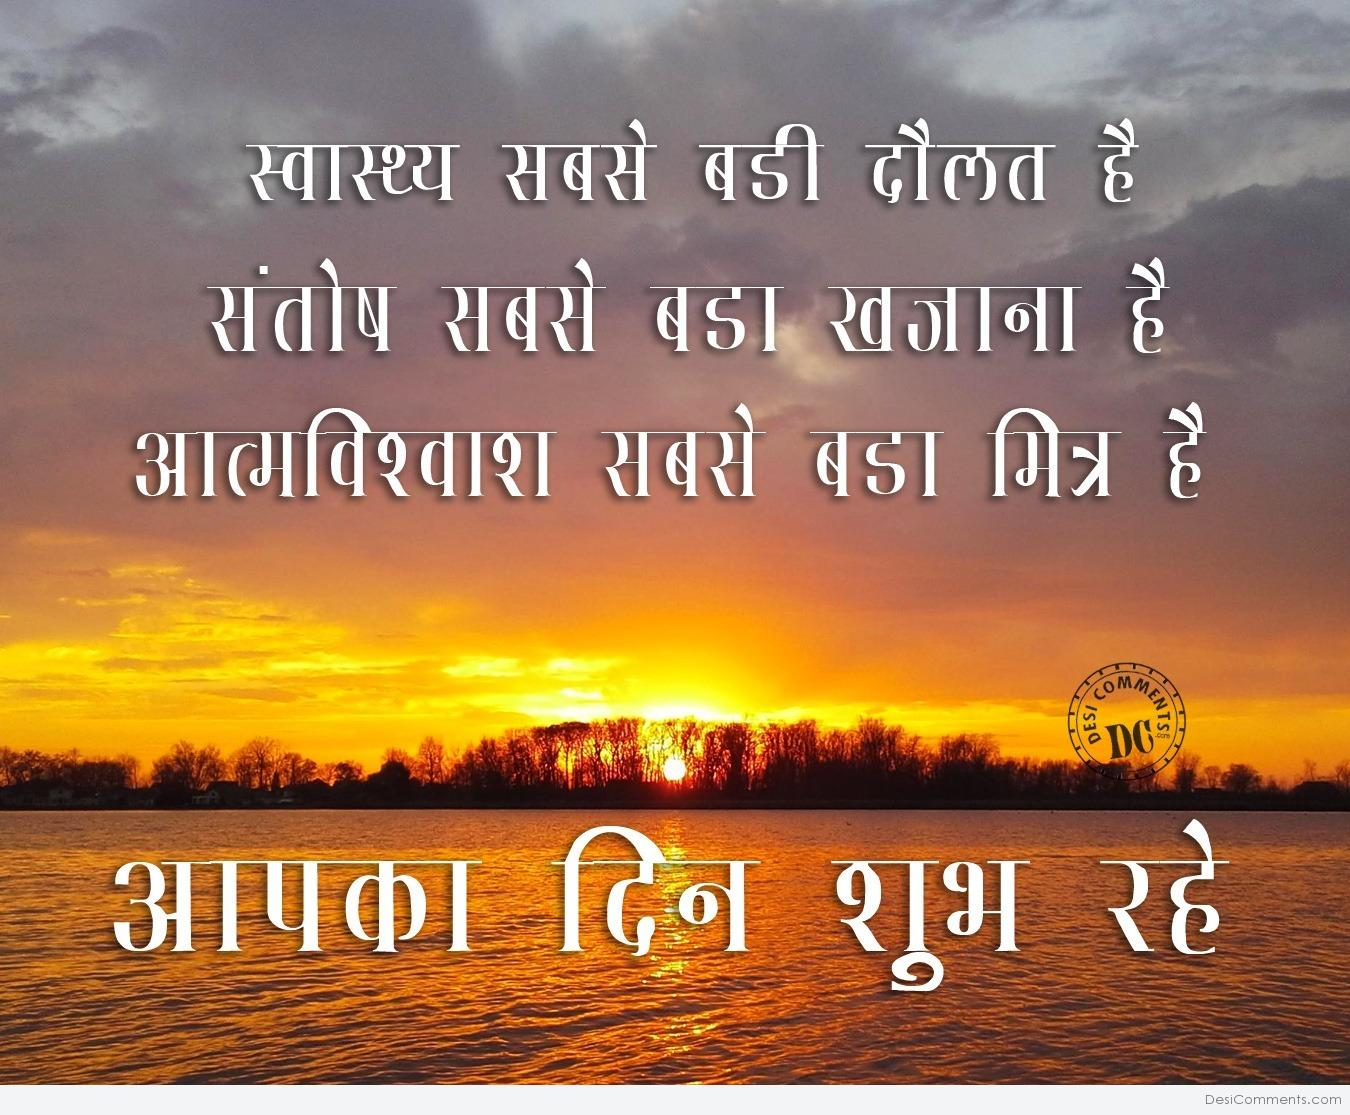 2340+ Hindi Pictures, Images, Photos - Page 90